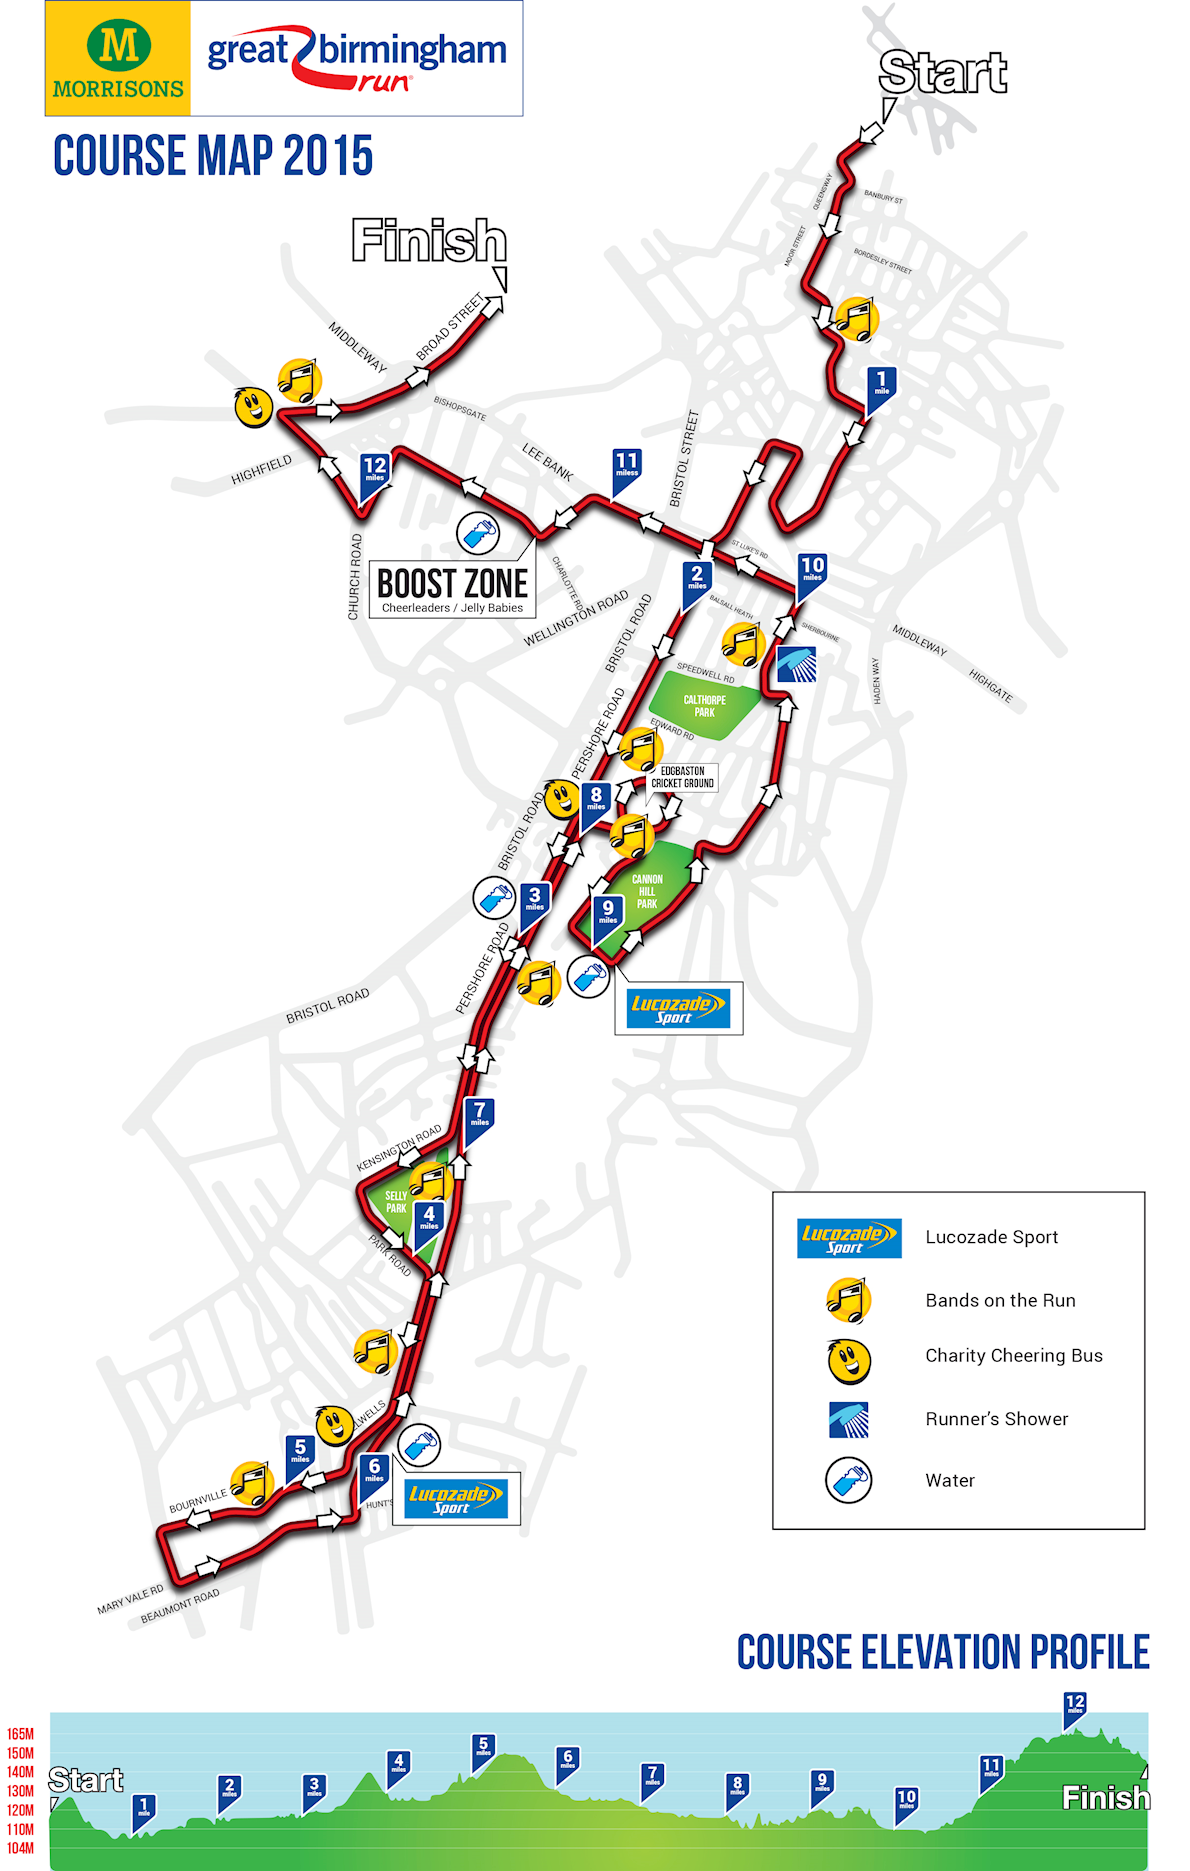 Great Birmingham Run Mappa del percorso